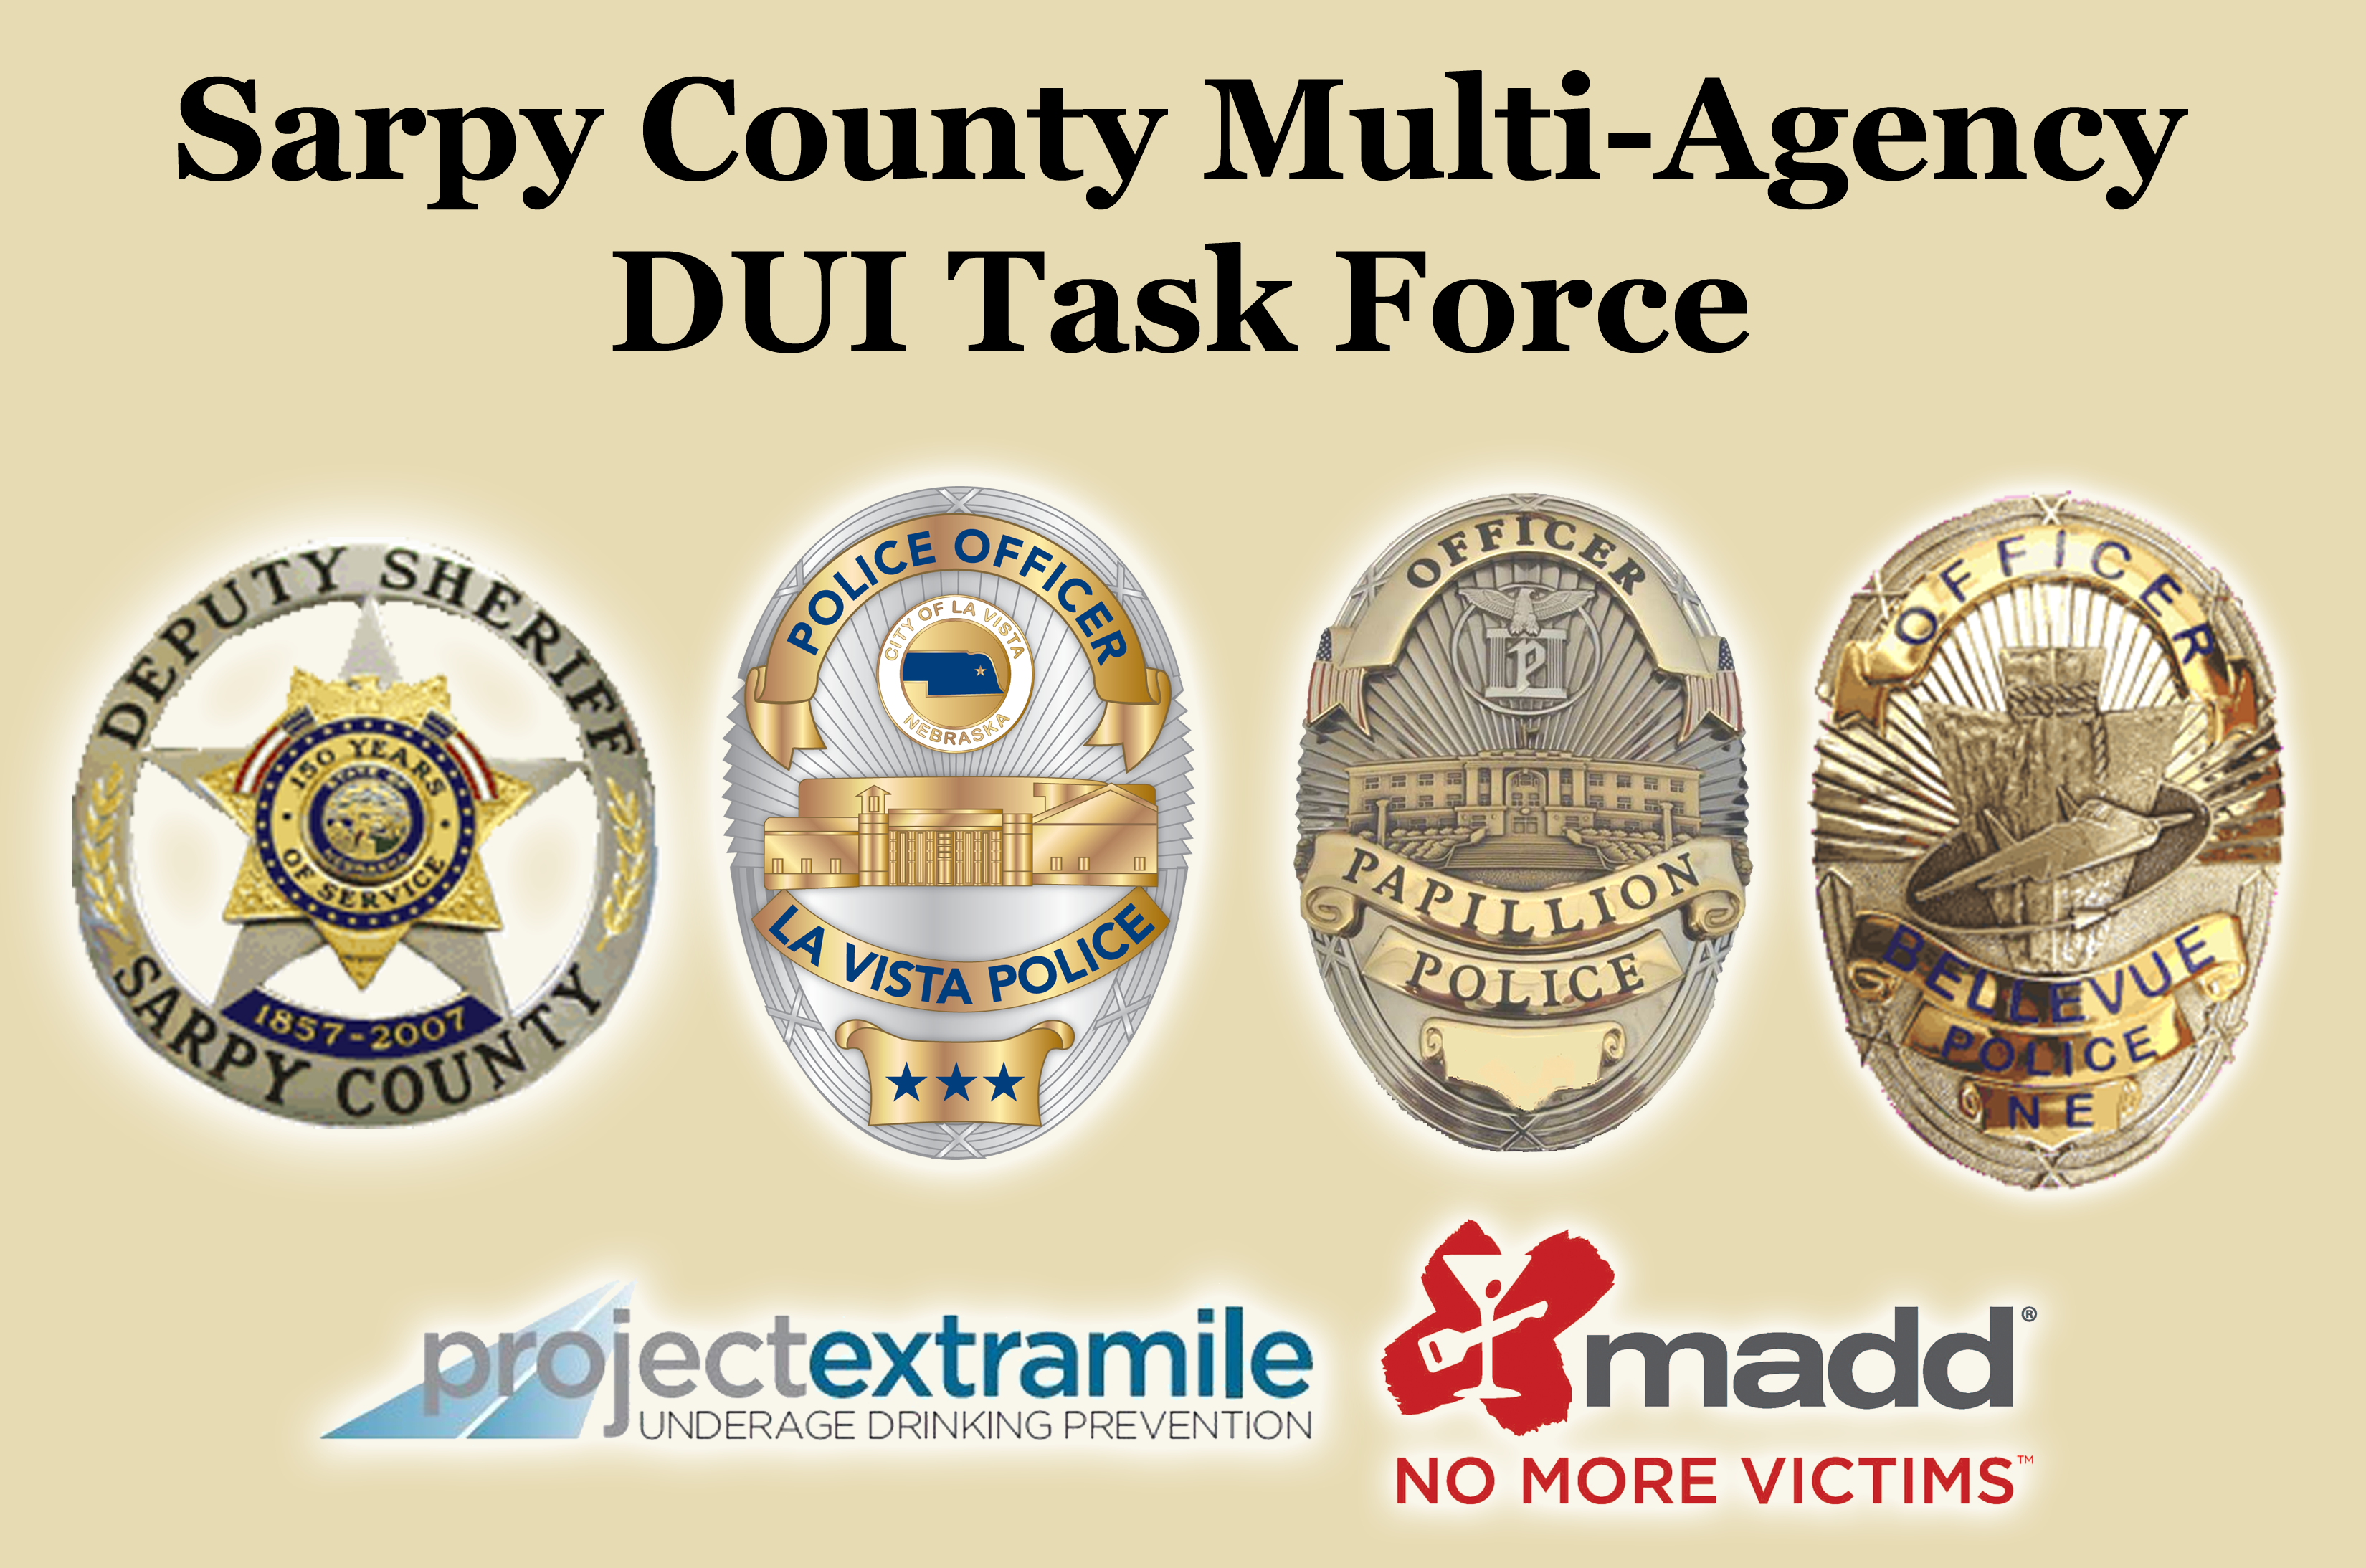 Sarpy County Multi Agency DUI Task Force